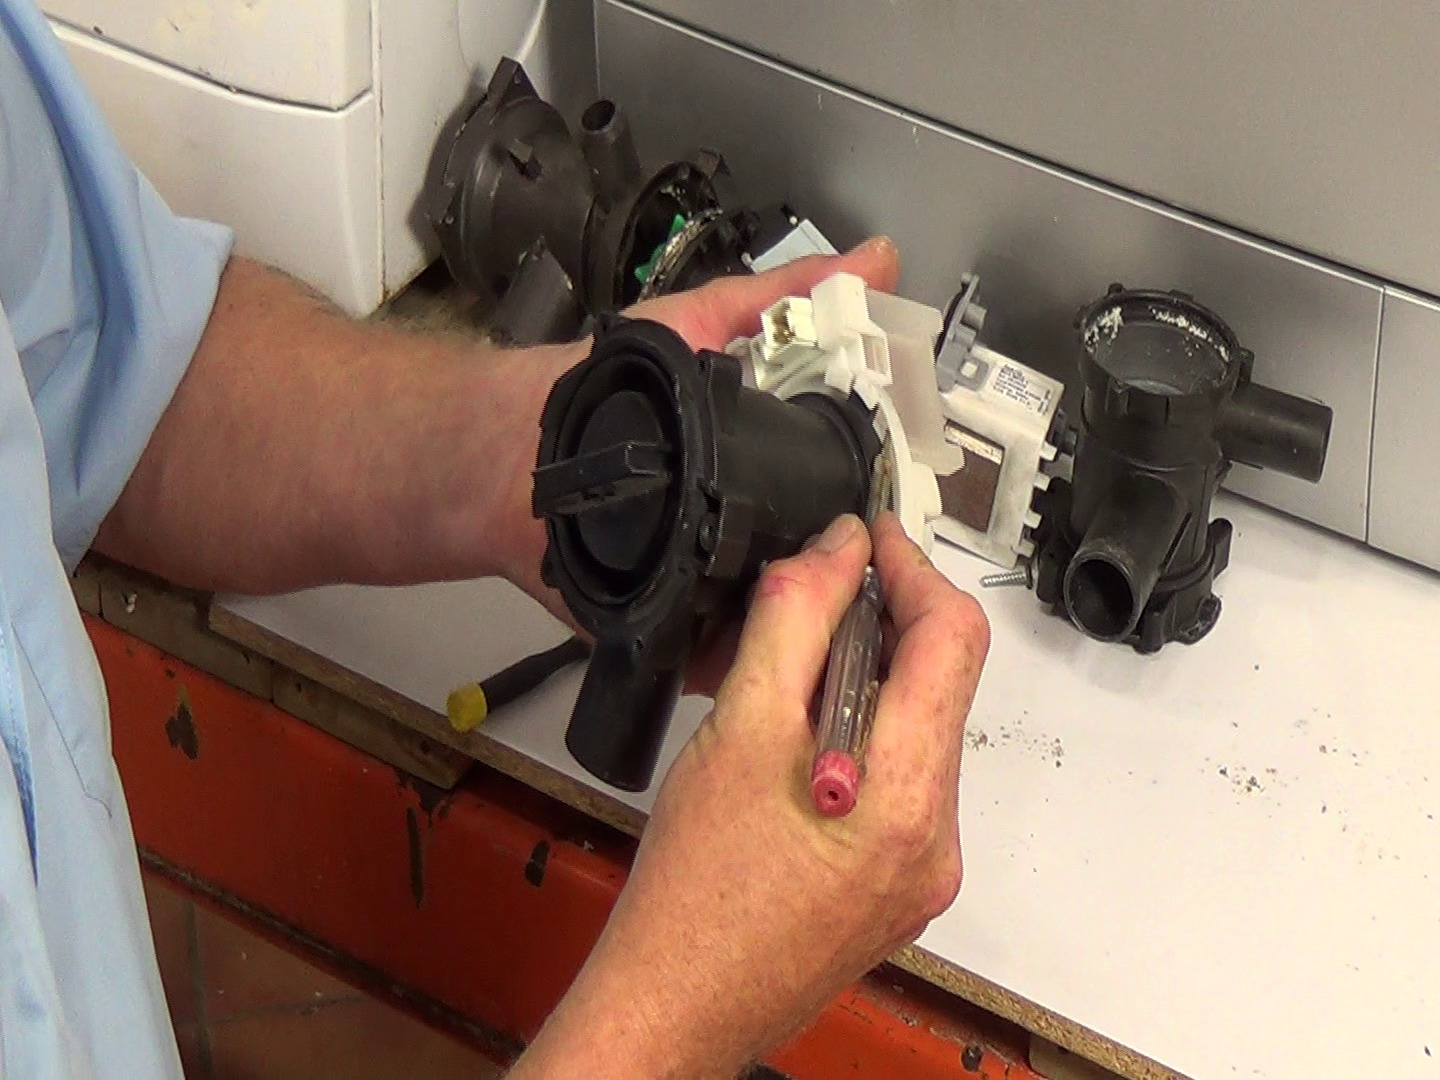 How To Open Washing Machine Pump Filter That Is Stuck Or